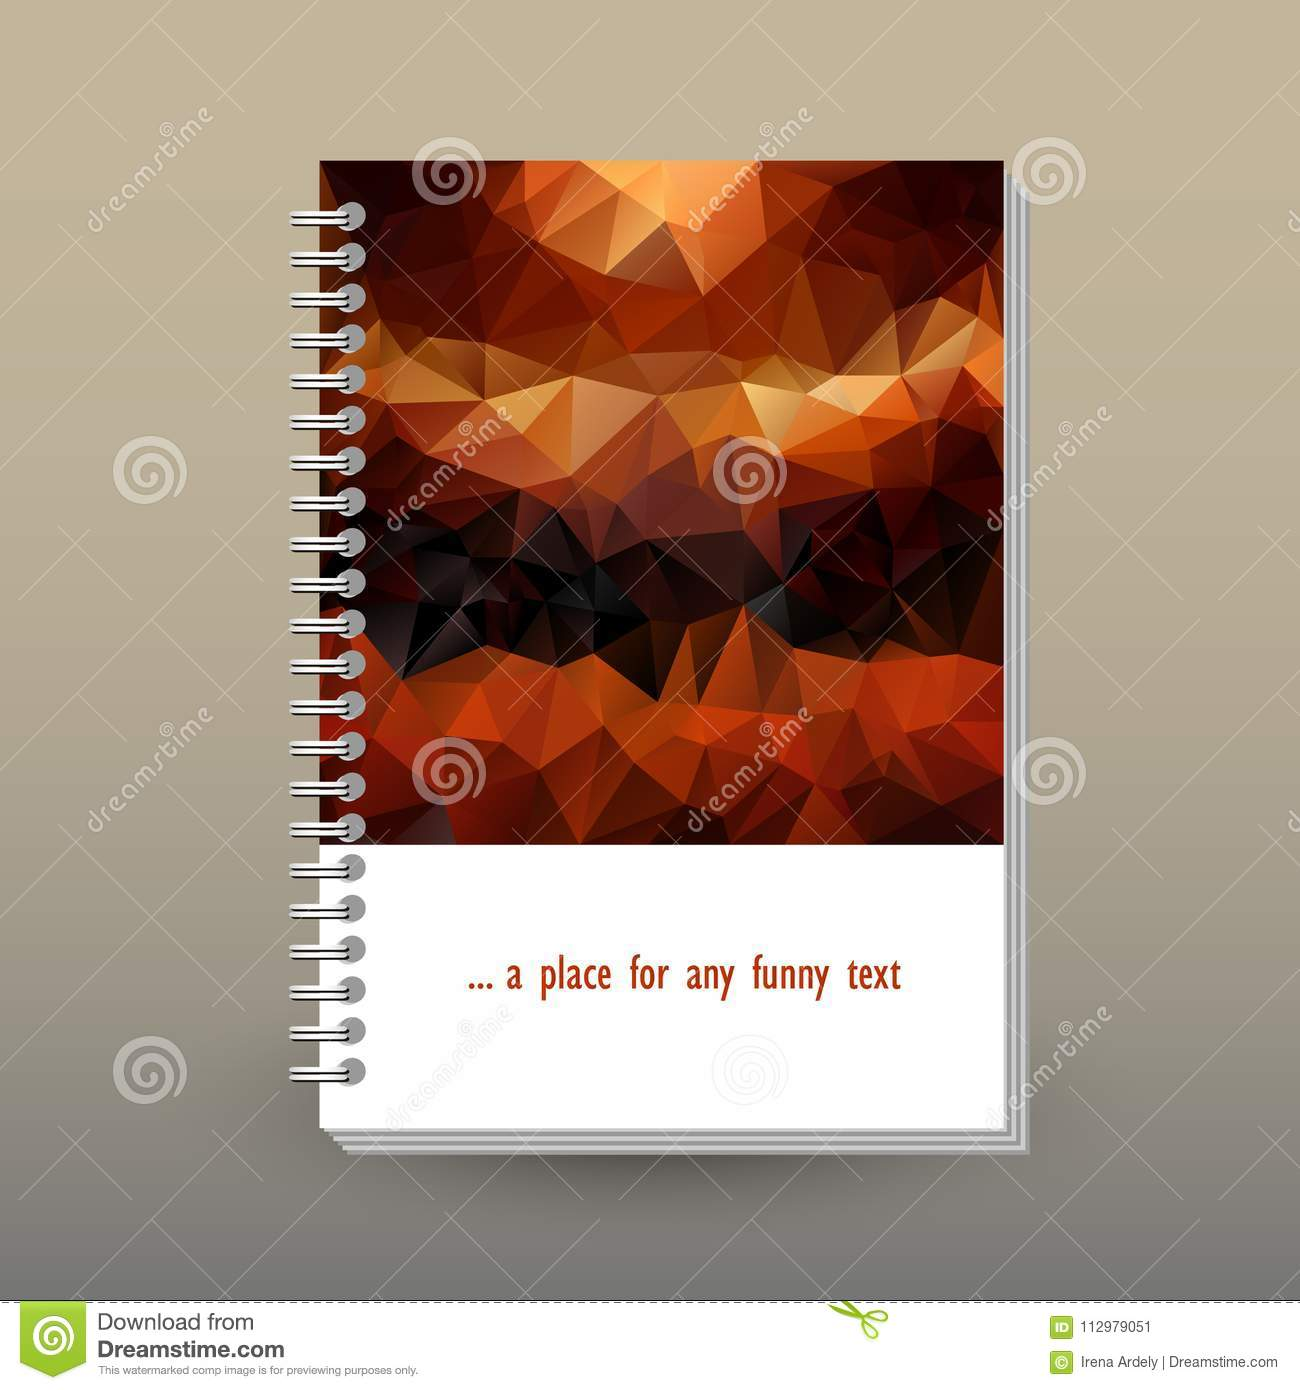 Vector cover of diary with ring spiral binder - format A5 - layout brochure concept - brown and orange colored with vi